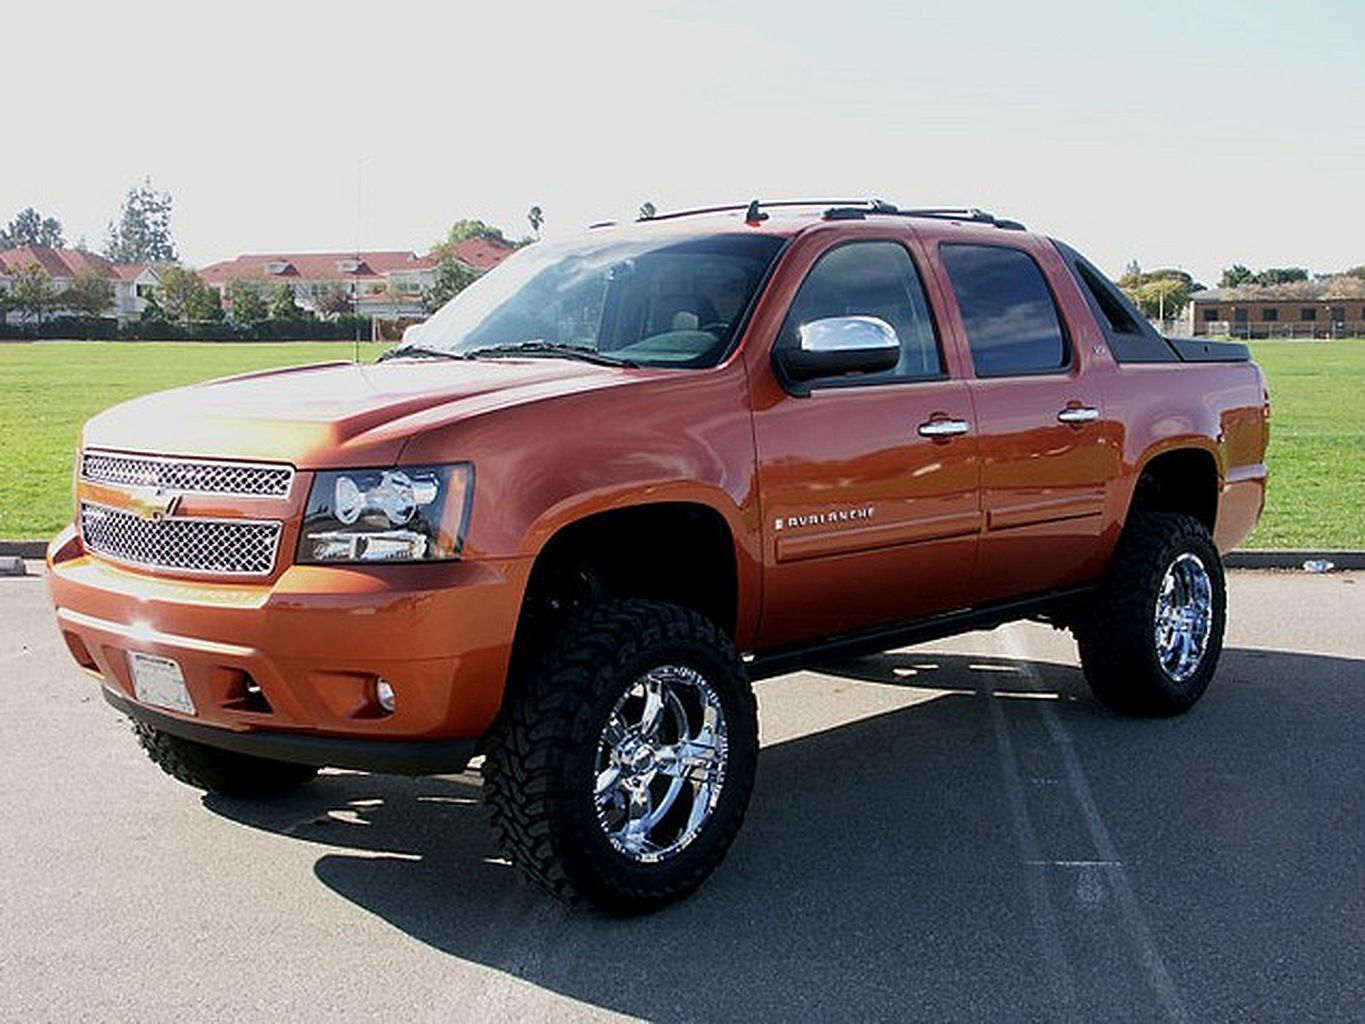 Chevy Avalanche Custom Car Https Www Mobmasker Com Chevy